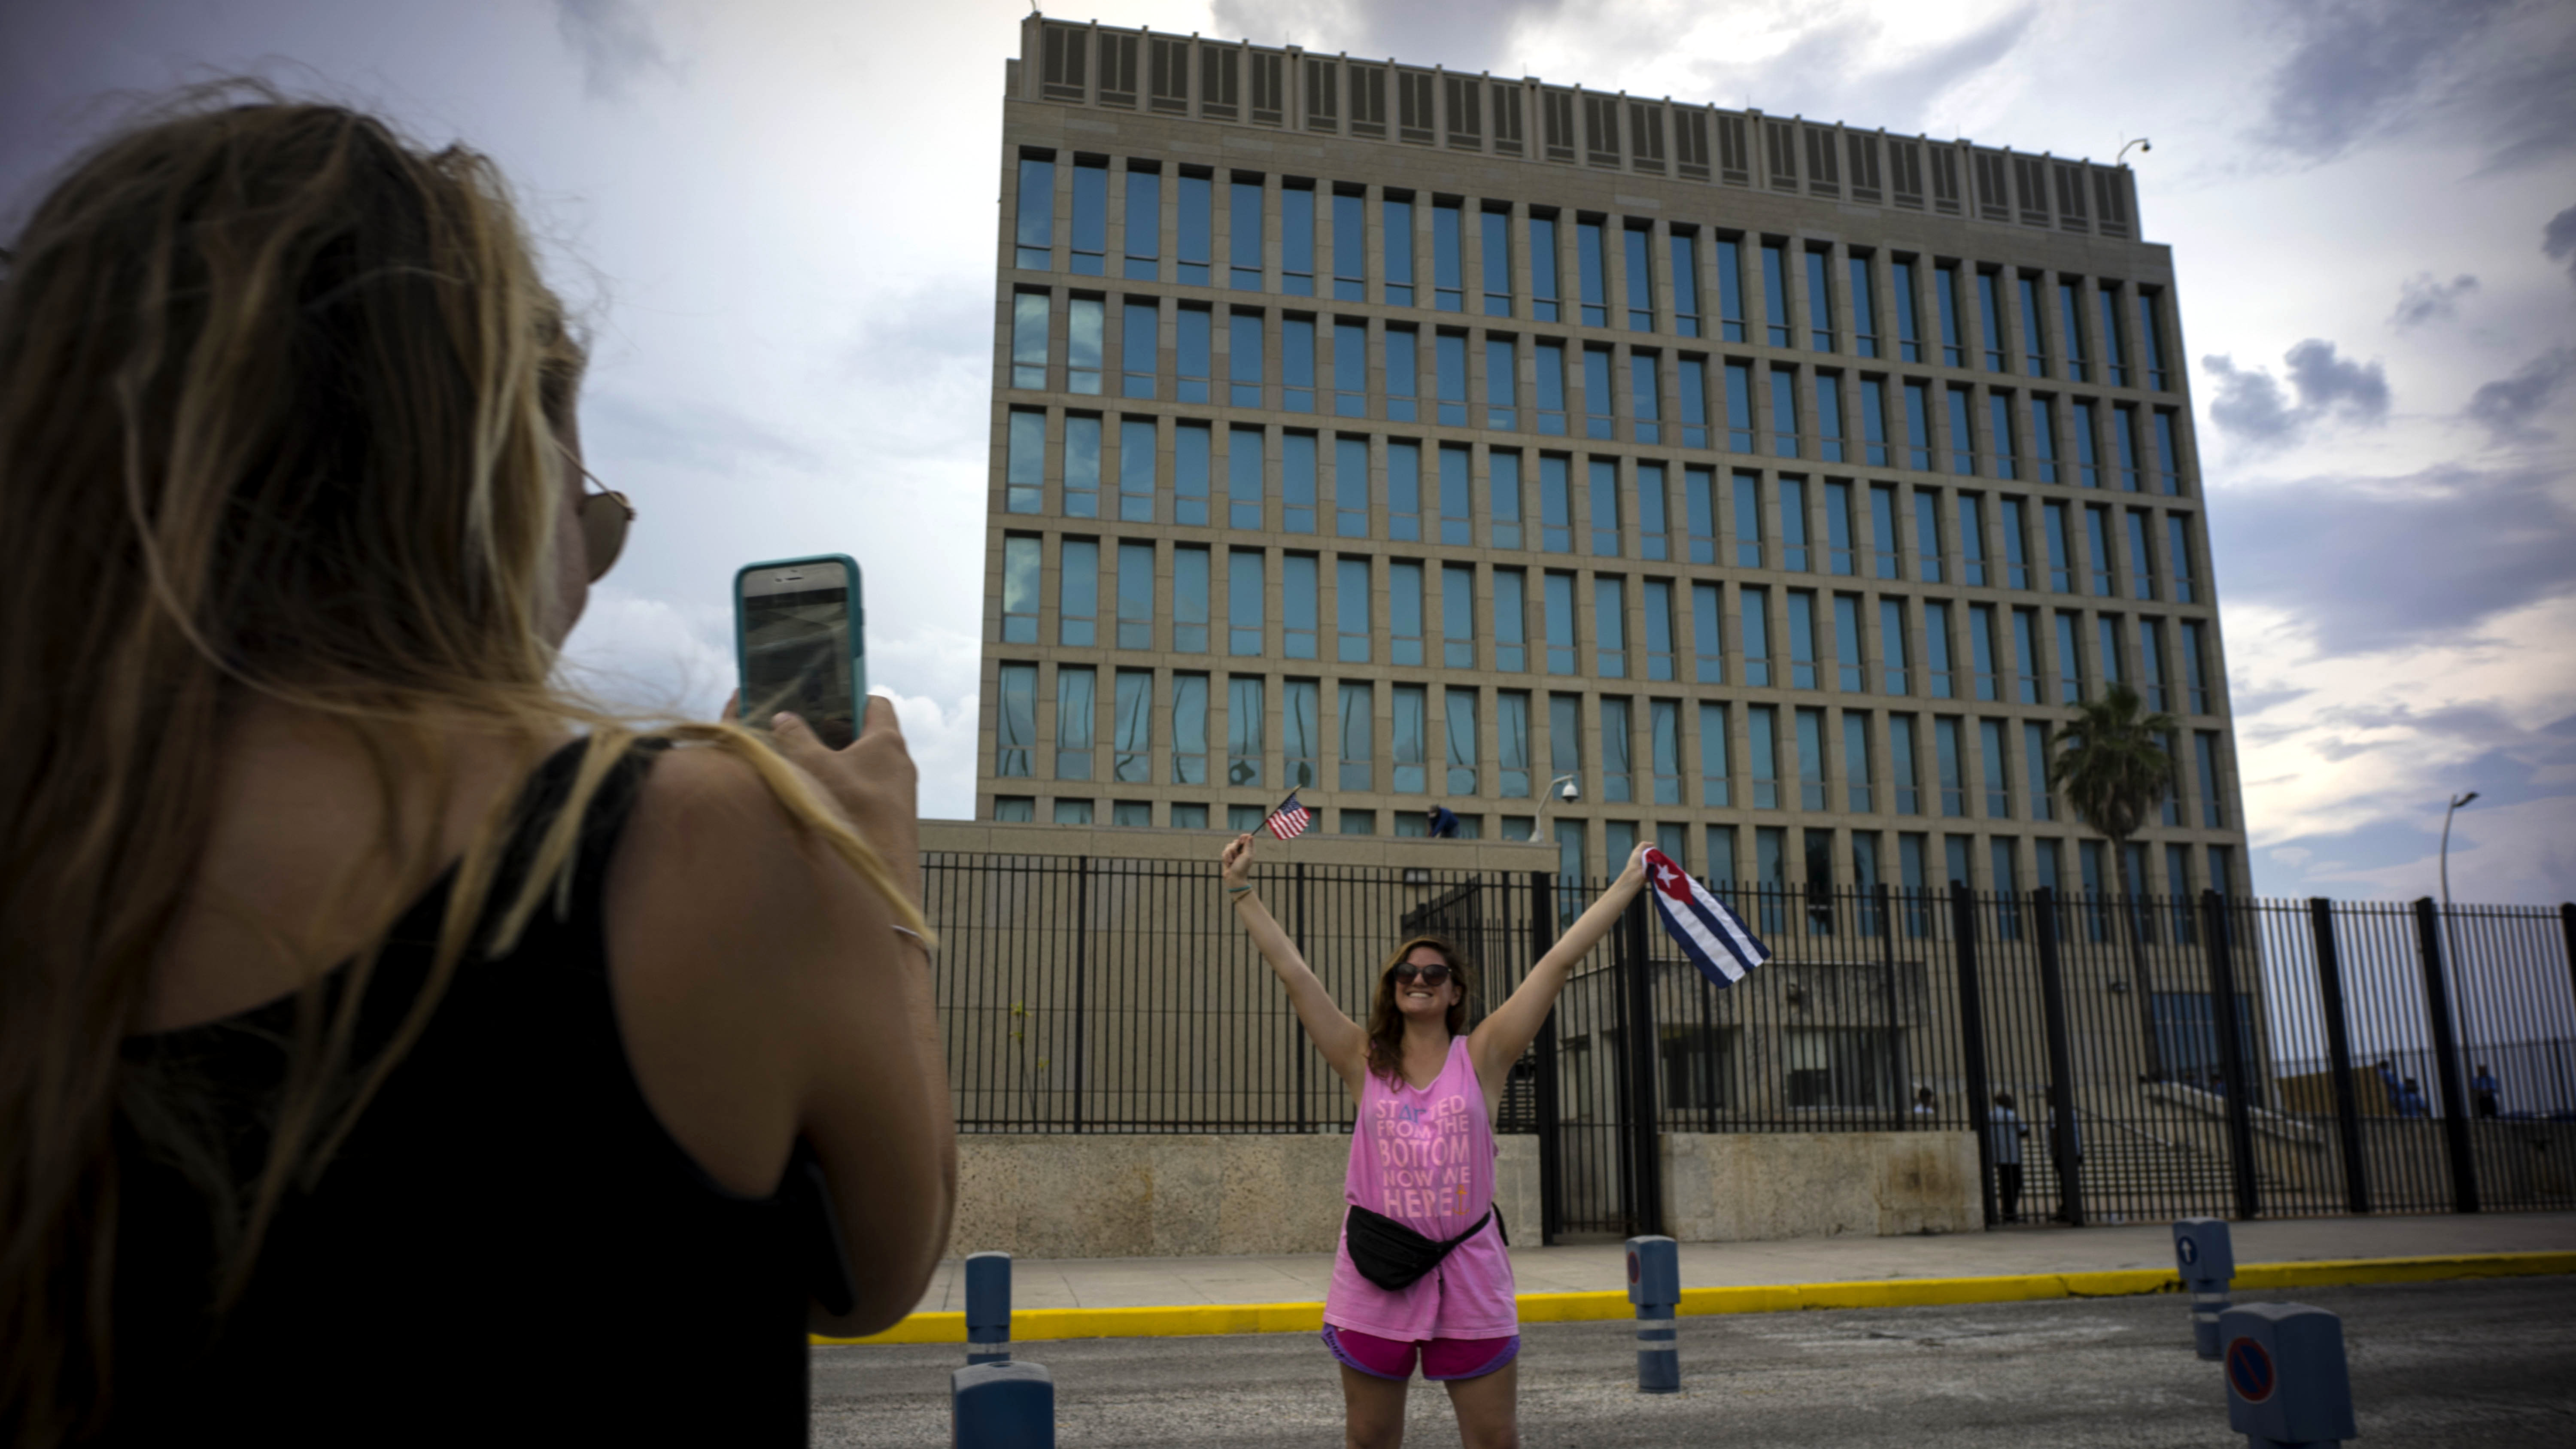 FILE- In this Aug. 11, 2015 file photo, US Citizen Jordan Graddis, 24, left, takes a photo of Emily O'connell, 24, as she holds a US and a Cuban flag in front of the U.S. embassy in Havana, Cuba. On Friday, June 16, 2017, President Donald Trump will give America's Cuba policy its second 180-degree spin in three years. Speaking from Miami, Trump's expected to revive the Cold War goal of starving Cuba's communist system of cash while inciting the population to overthrow it.